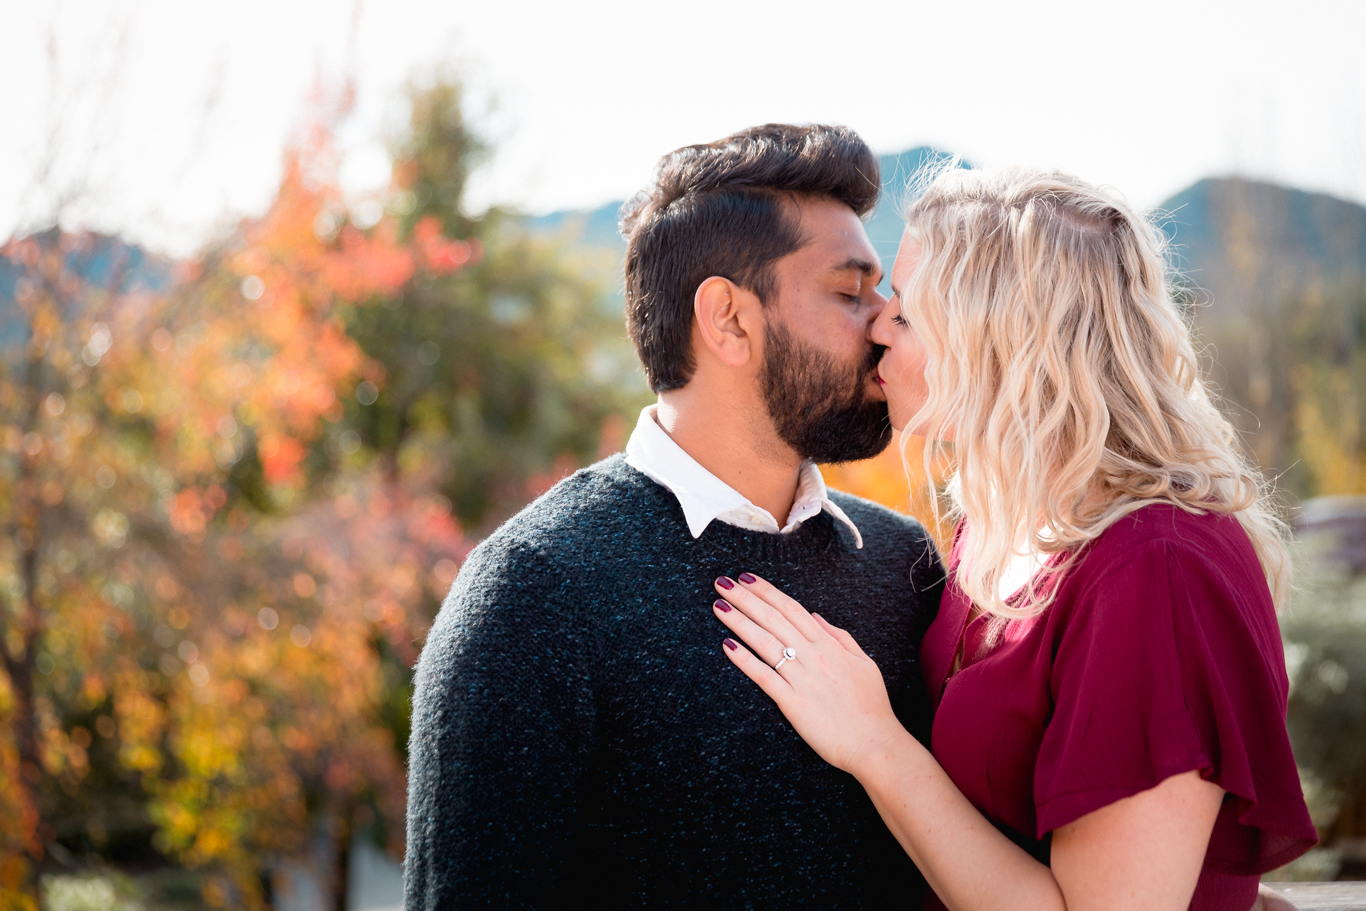 2018.12.03_Ashir-and-Emily-Engagement-Photography-@heymikefrancis-napa-valley-wedding-sacremento-california-heyfrancis-mikefrancis-7639.jpg